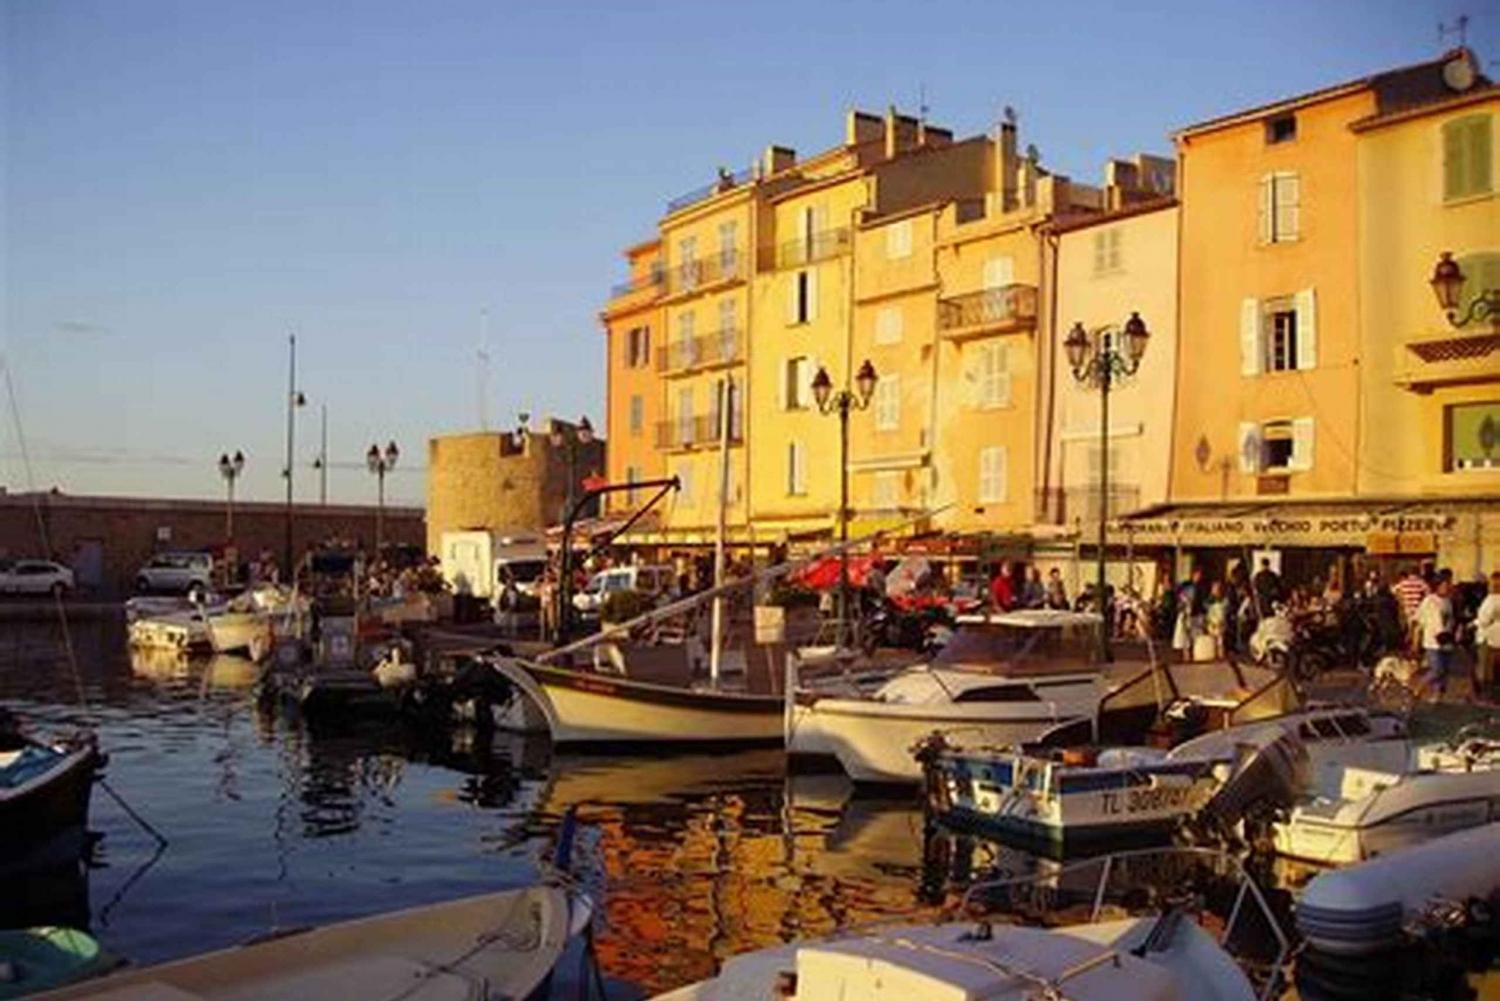 From Nice: Saint-Tropez and Port Grimaud